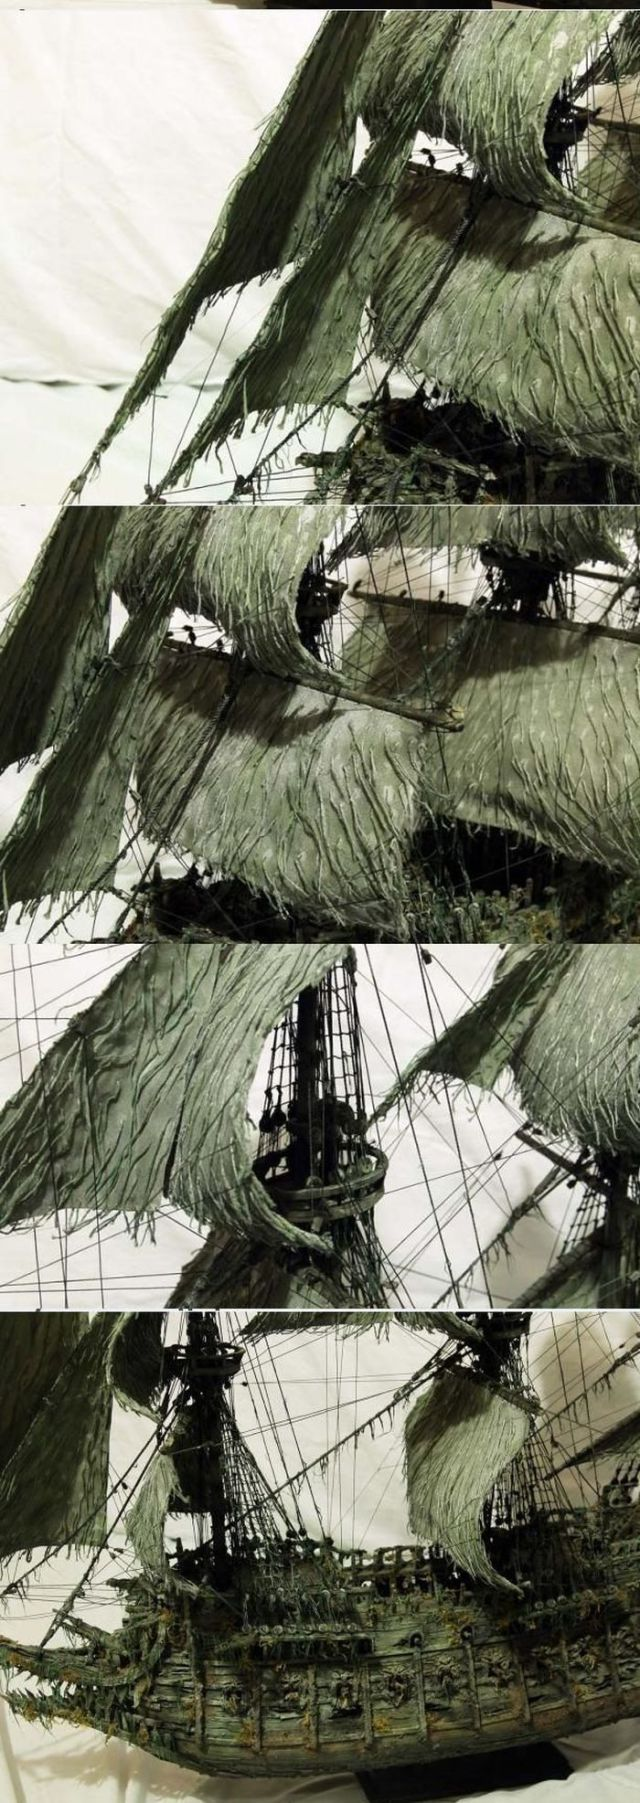 A Model Ship of The Flying Dutchman from Pirates of the Caribbean